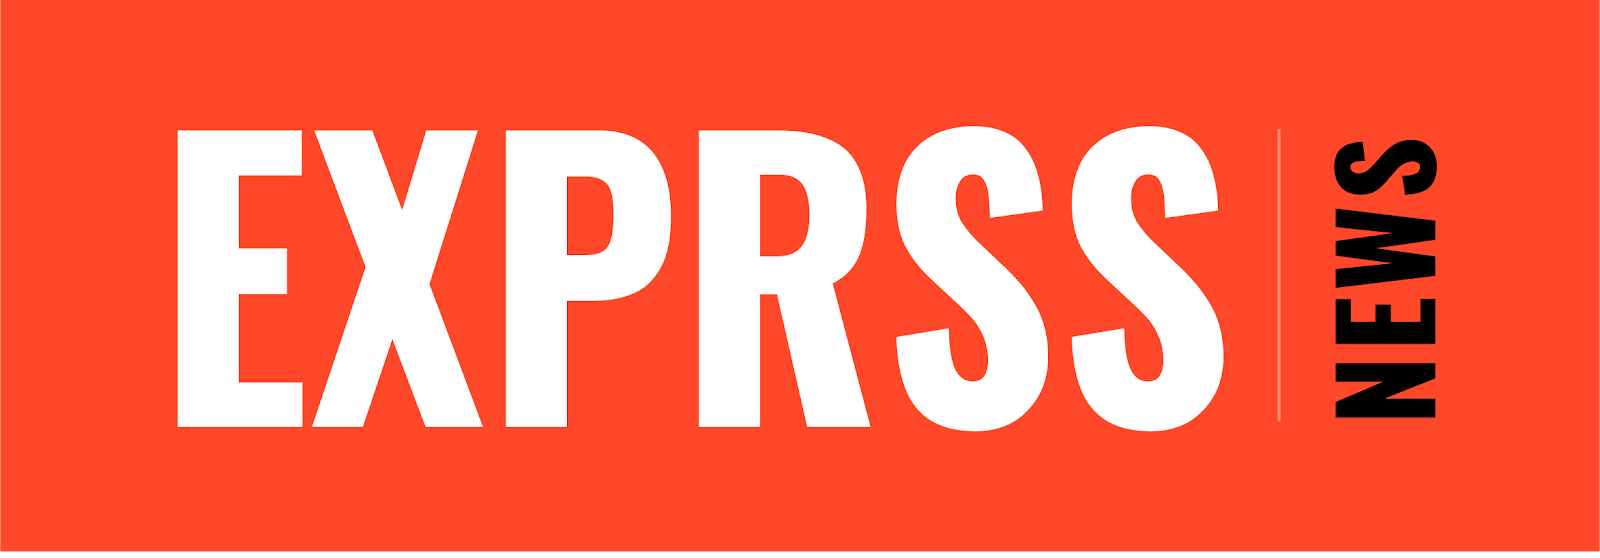 Latest News: Breaking News & Exclusive Headlines, National News & World News | Exprssnews